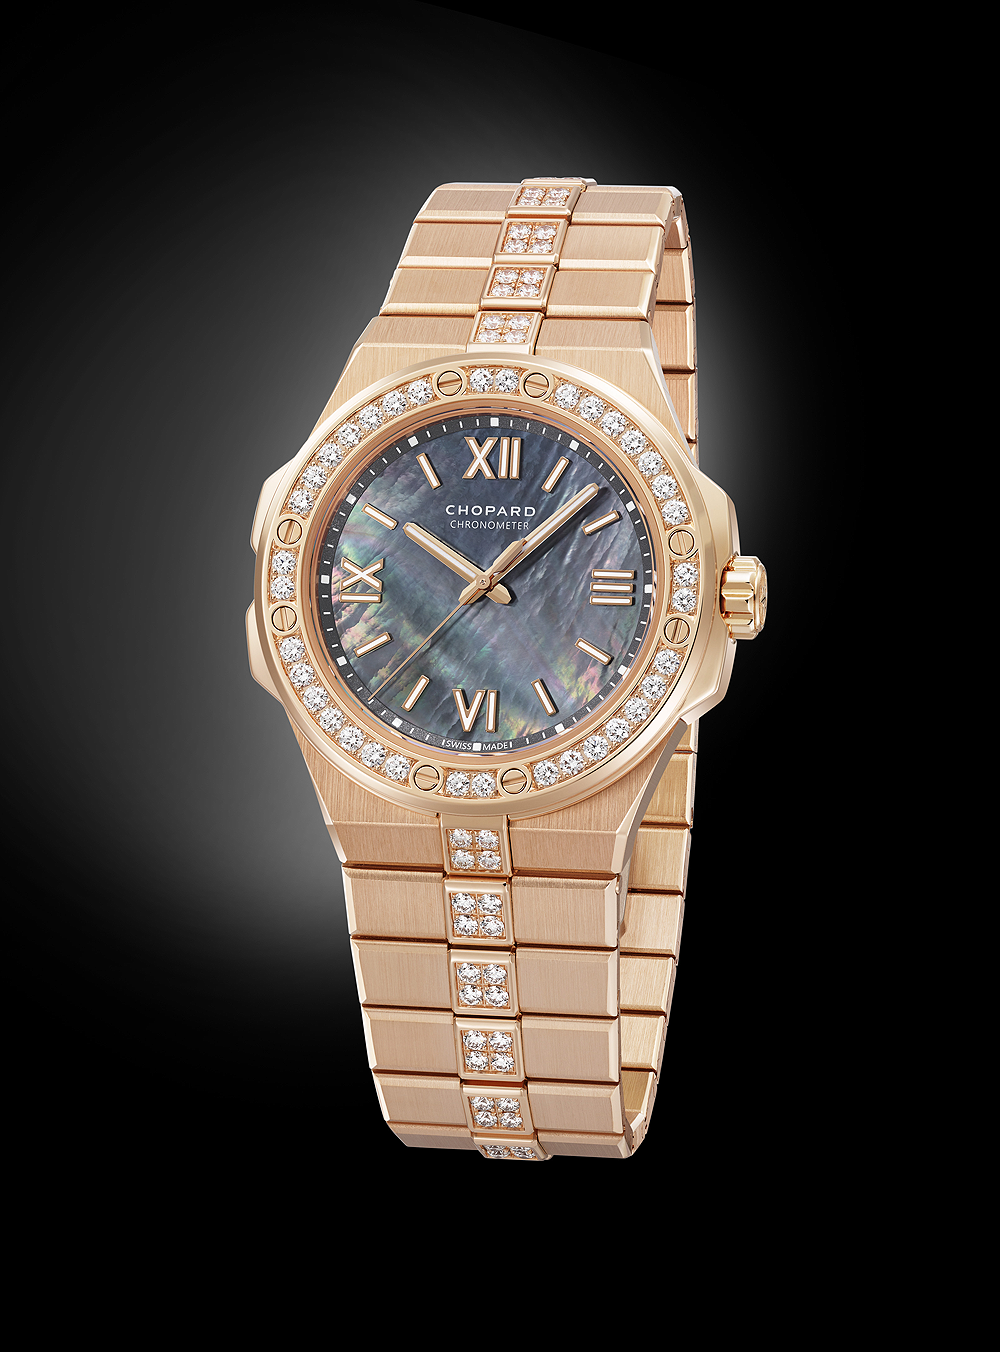 The Eagle Has Landed Chopard Launches New Alpine Eagle Collection Chopard Chopard Watch Eagle Watch